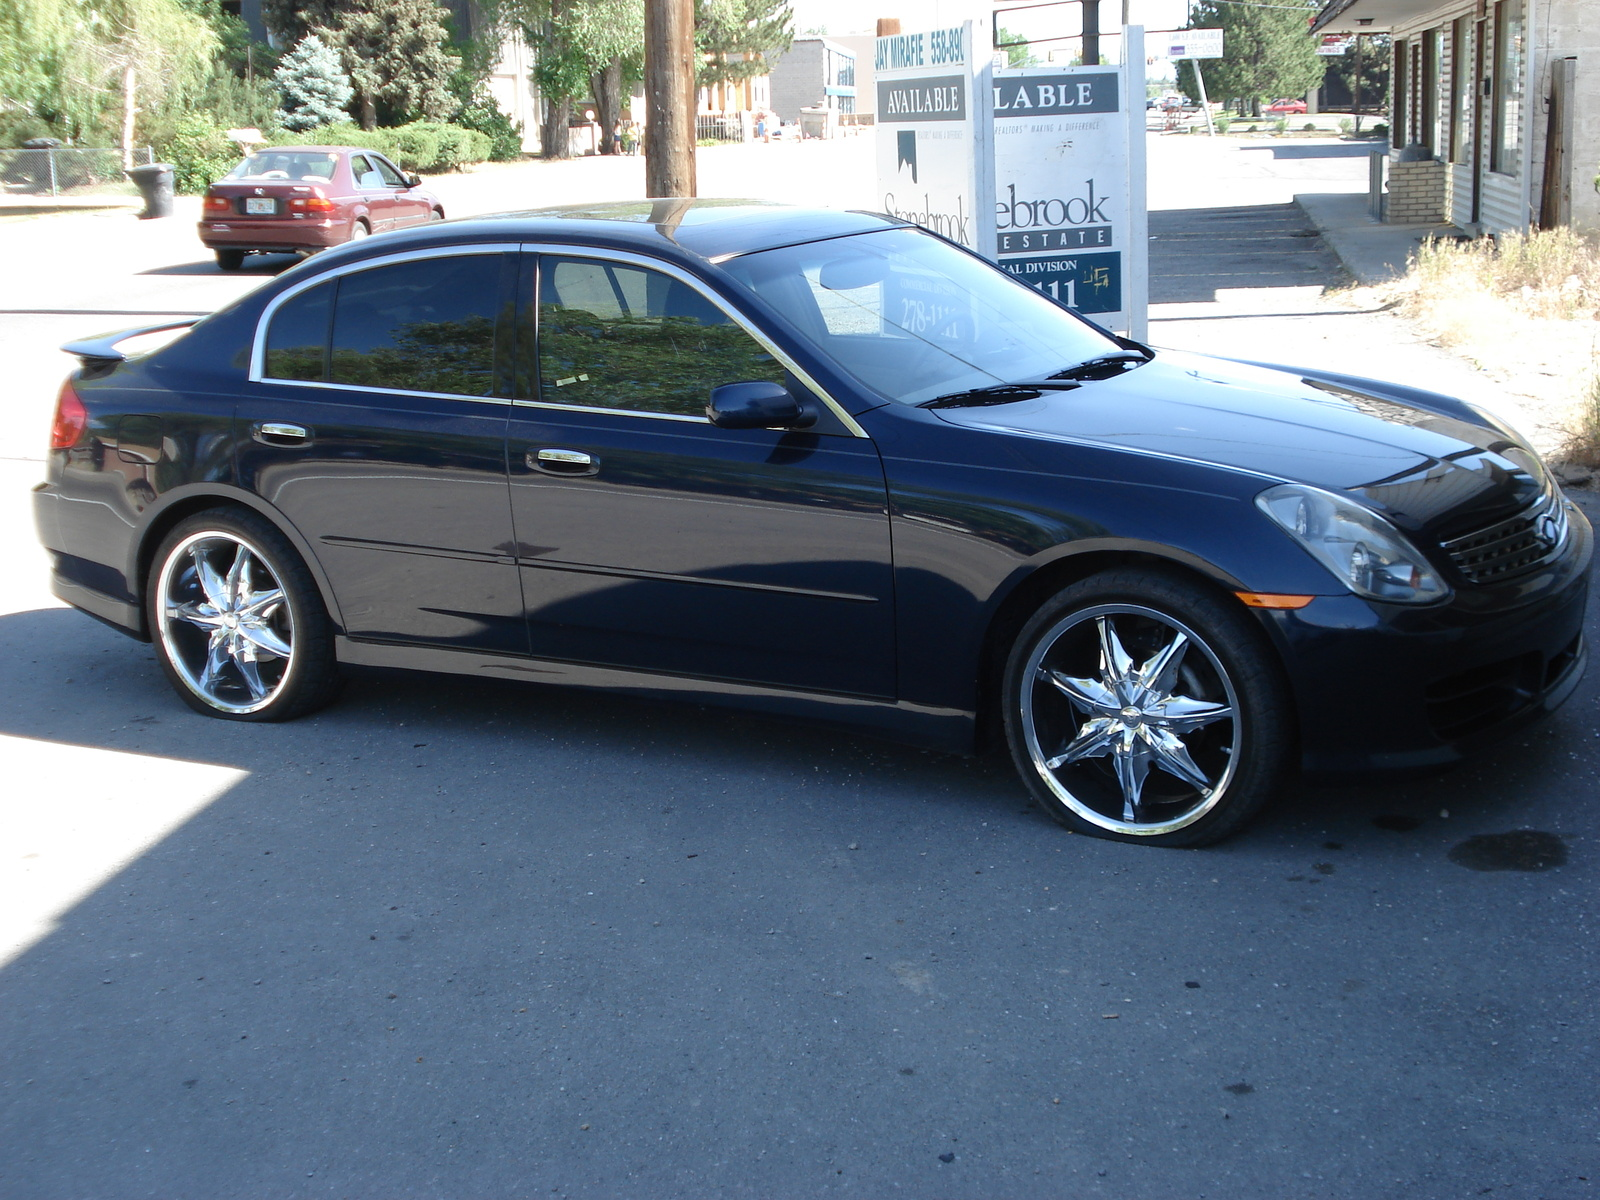 Almera N15 also 2018 Hyundai Elantra Gt Sport Cargo Space 01 also 2009 Infiniti Fx35 Overview C21020 additionally Nissan restored the 1996 maxima that they bought moreover BMW 20X5. on 2004 infiniti i30